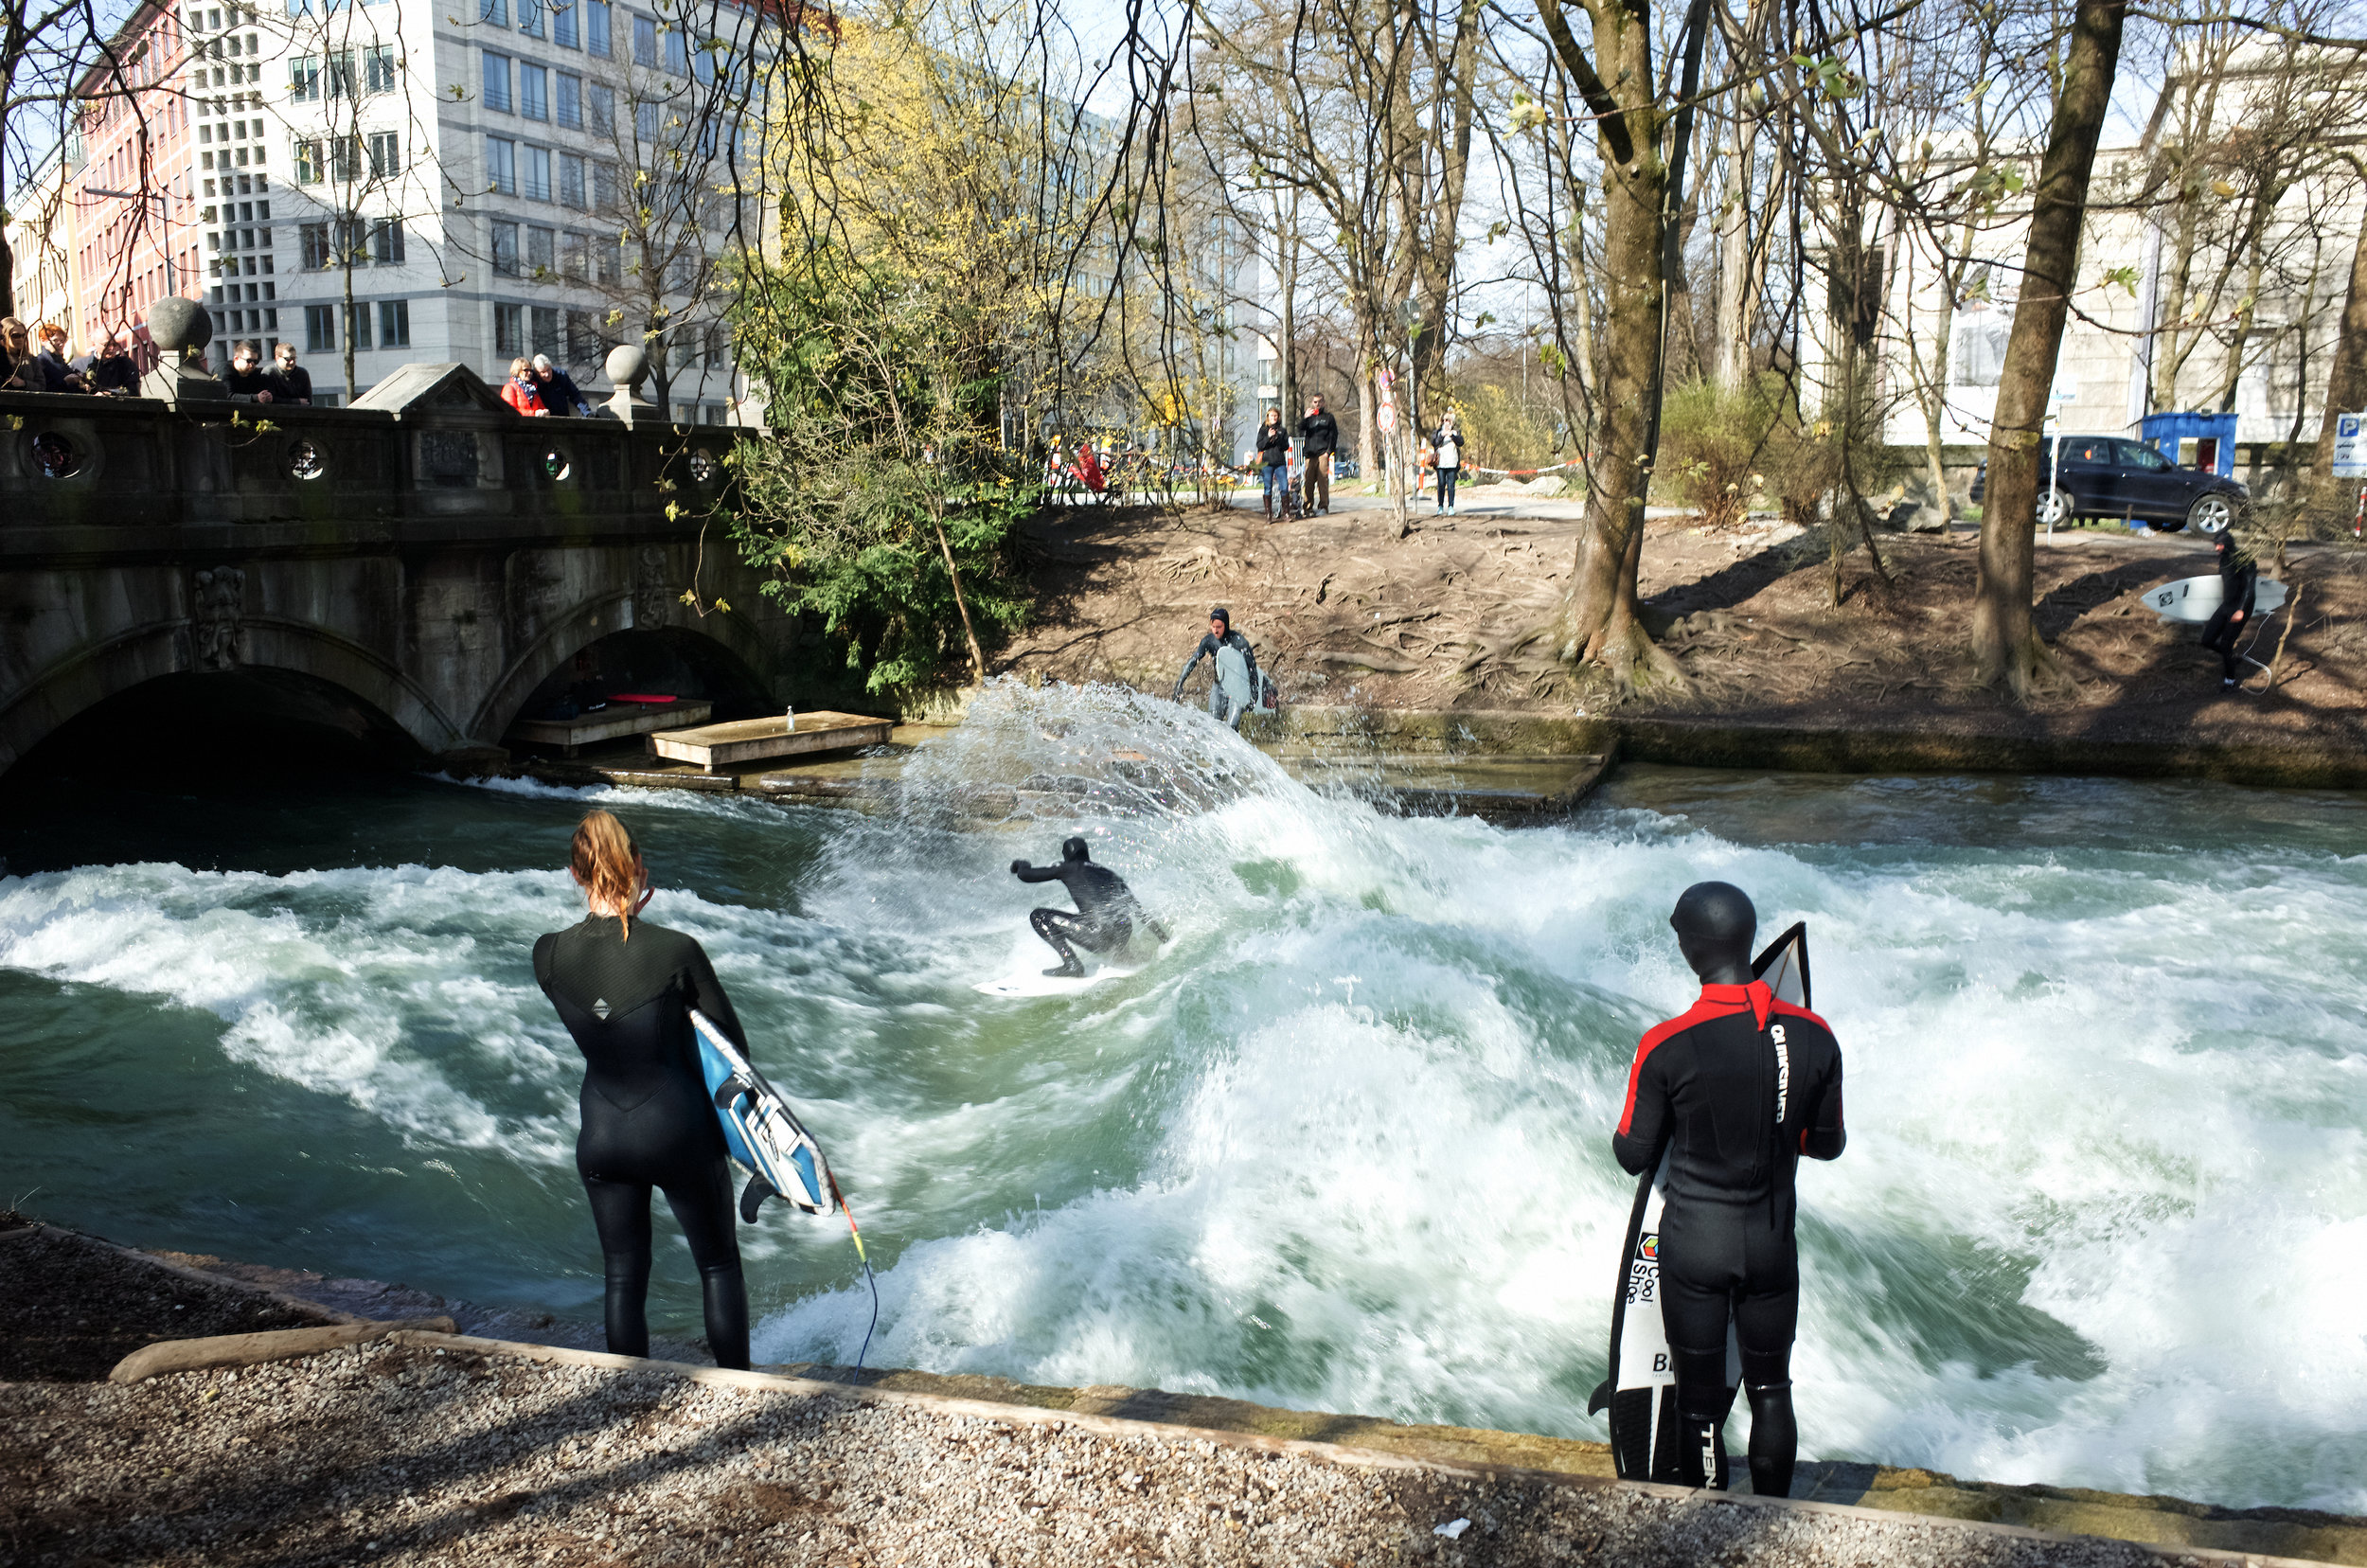 Stopping by the famous Eisbach, a manmade river that runs through Munich. It's famous for a wave that attracts groups of dedicated surfers to brave the waters.